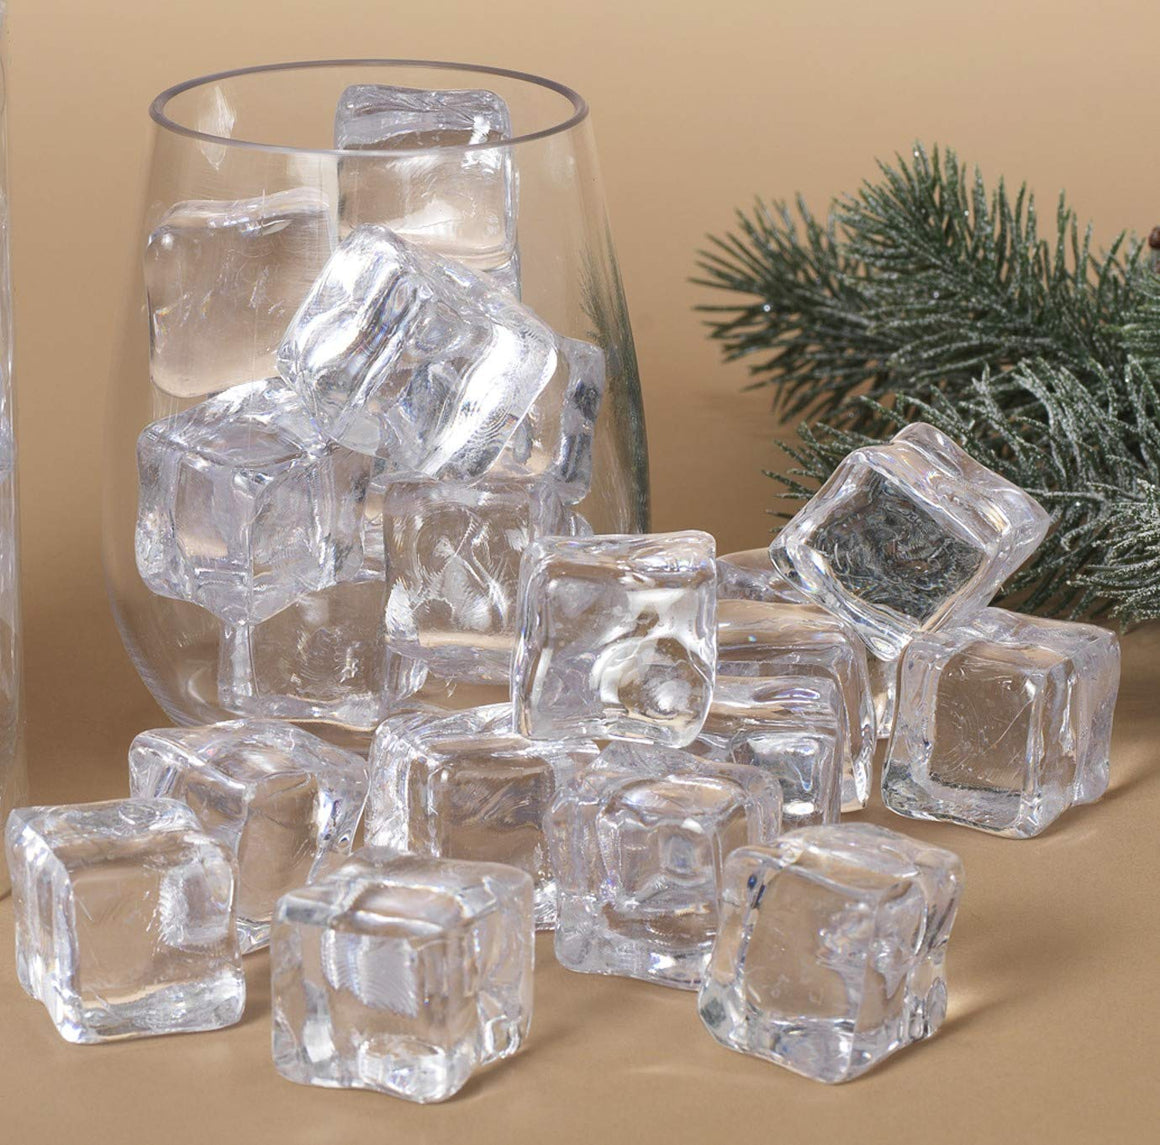 Clear Acrylic Ice Cubes 18 Pieces, 1-1/4 Inches, Smooth Finish Glass Look No Bubbles, Photo Prop, Vase Filler, Christmas Decor